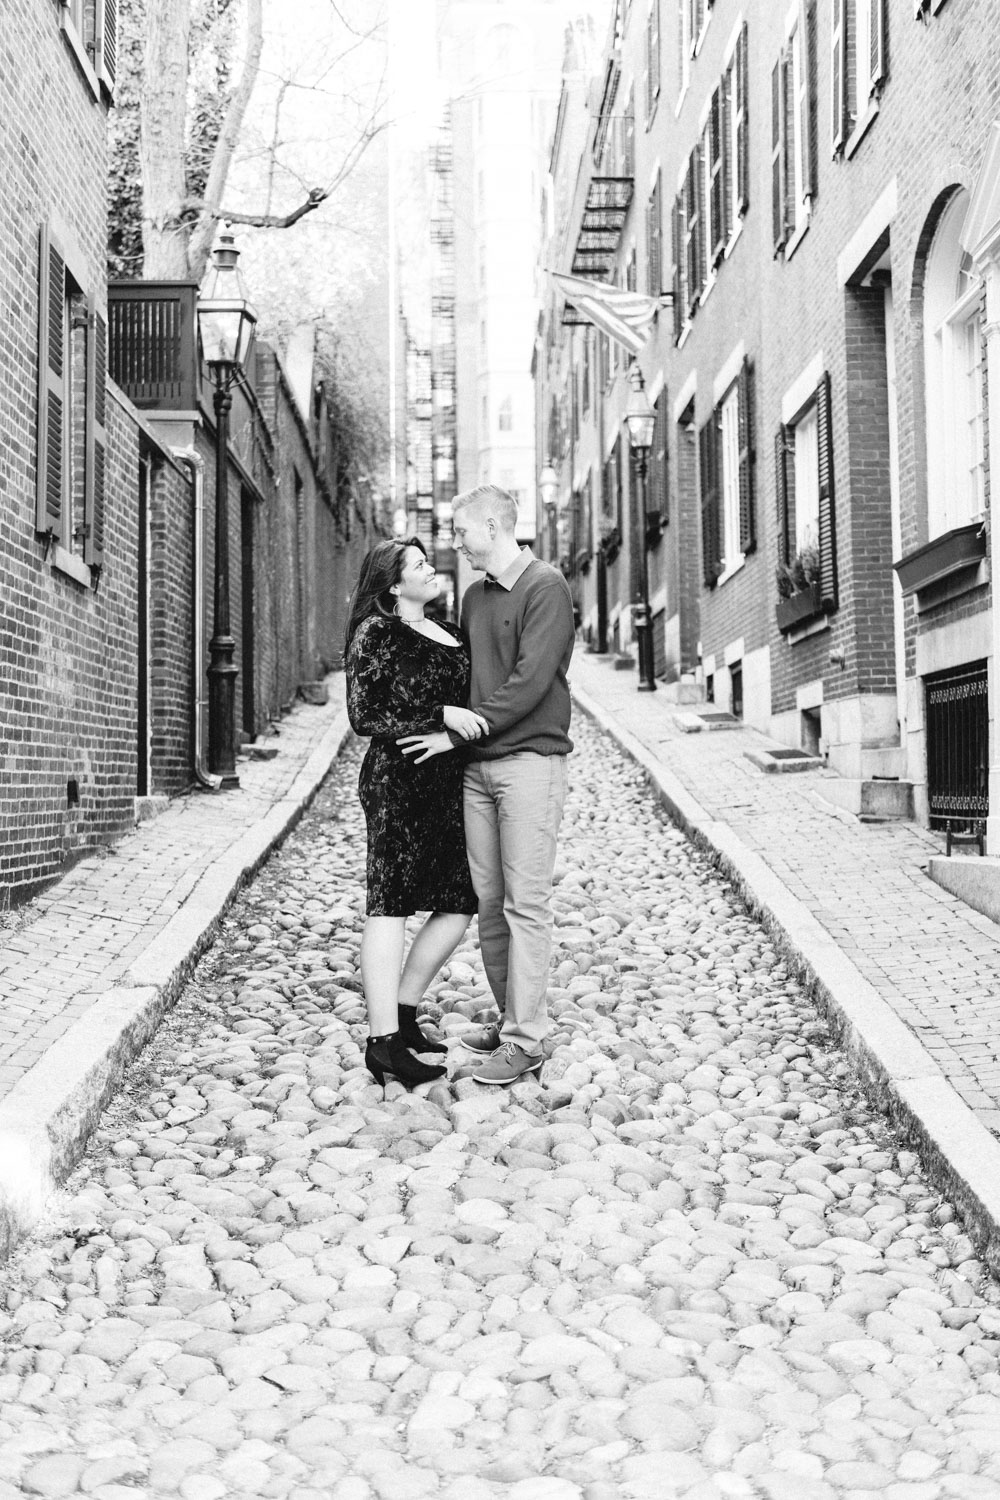 Andrea + Scott | Dog Lovers Beacon Hill Formal Spring Sunrise Creative Organic Romantic Black and White Engagement Session | Boston and New England Engagement Photography | Lorna Stell Photo